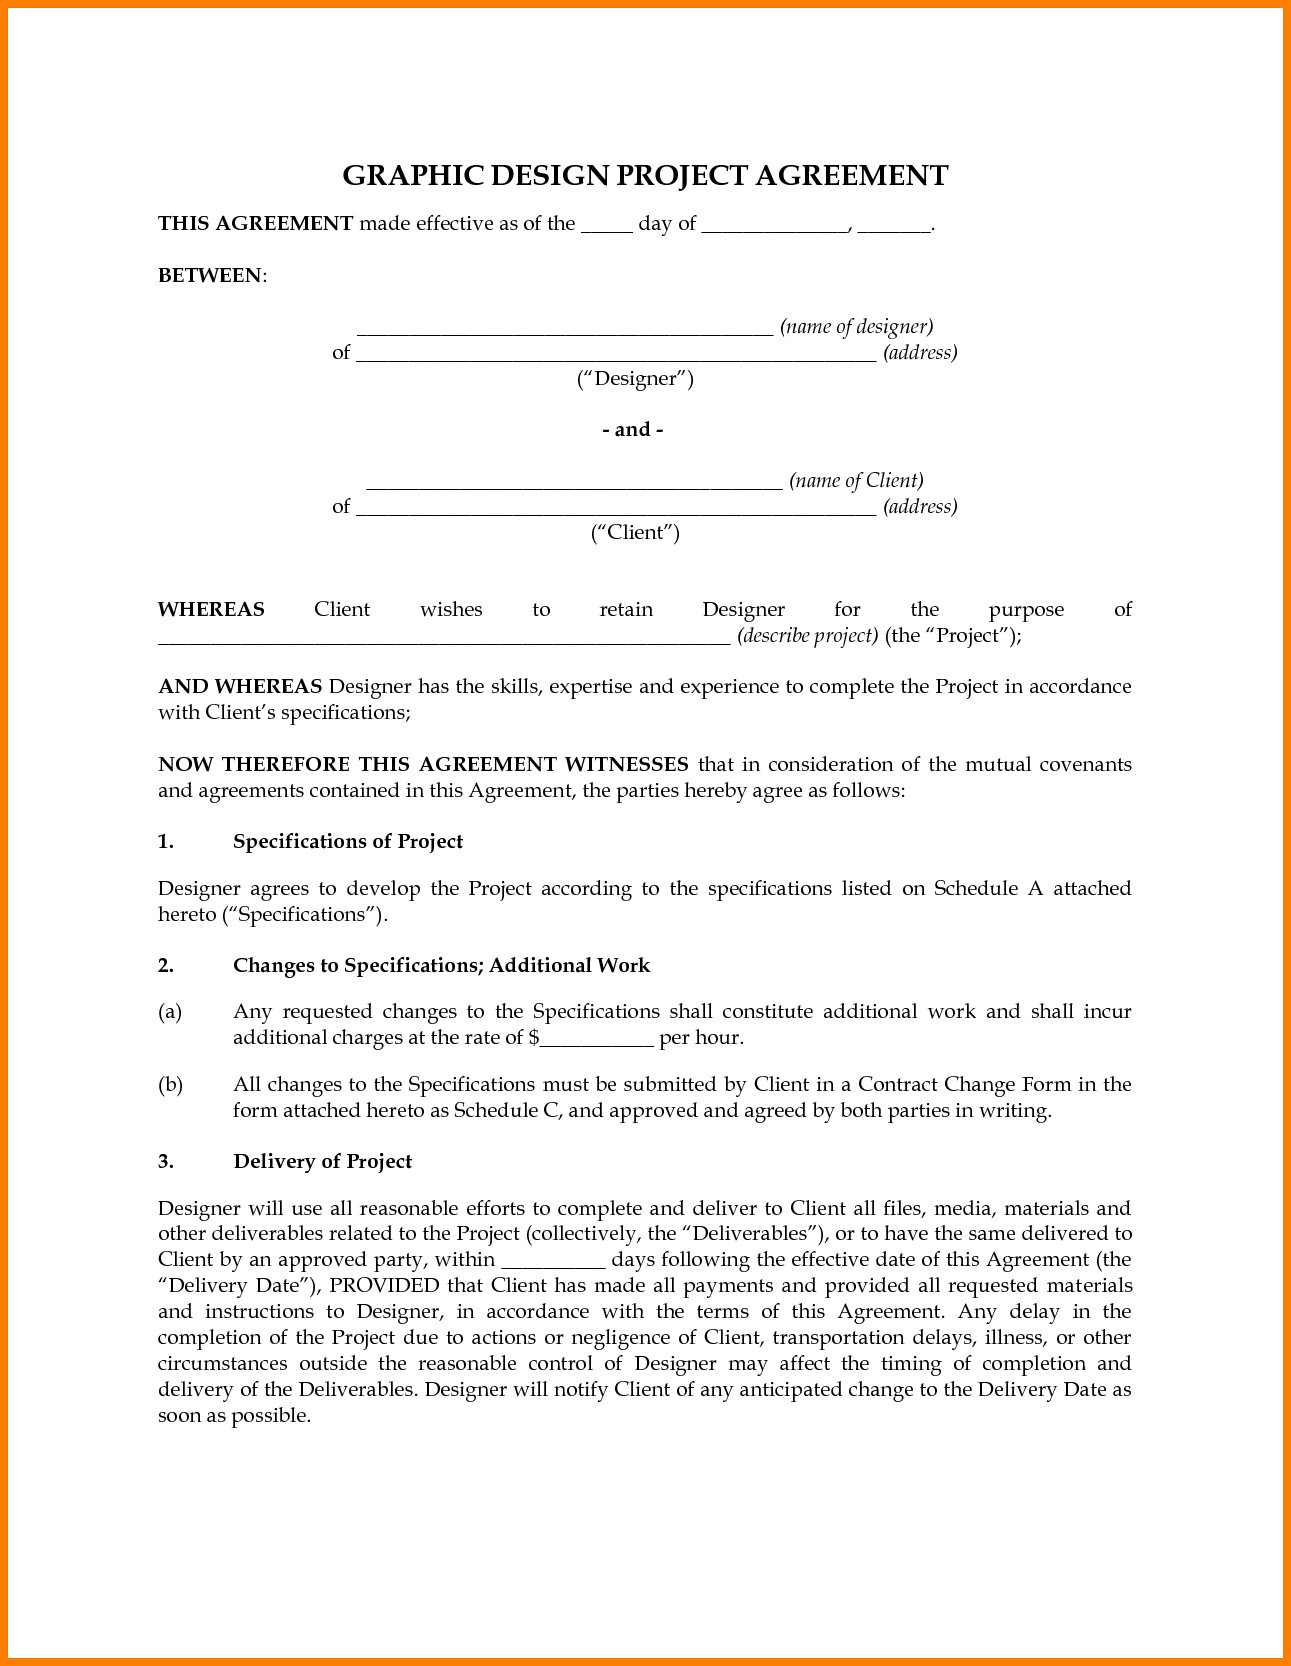 Graphic Design Contract Template 7 Graphic Design Contract